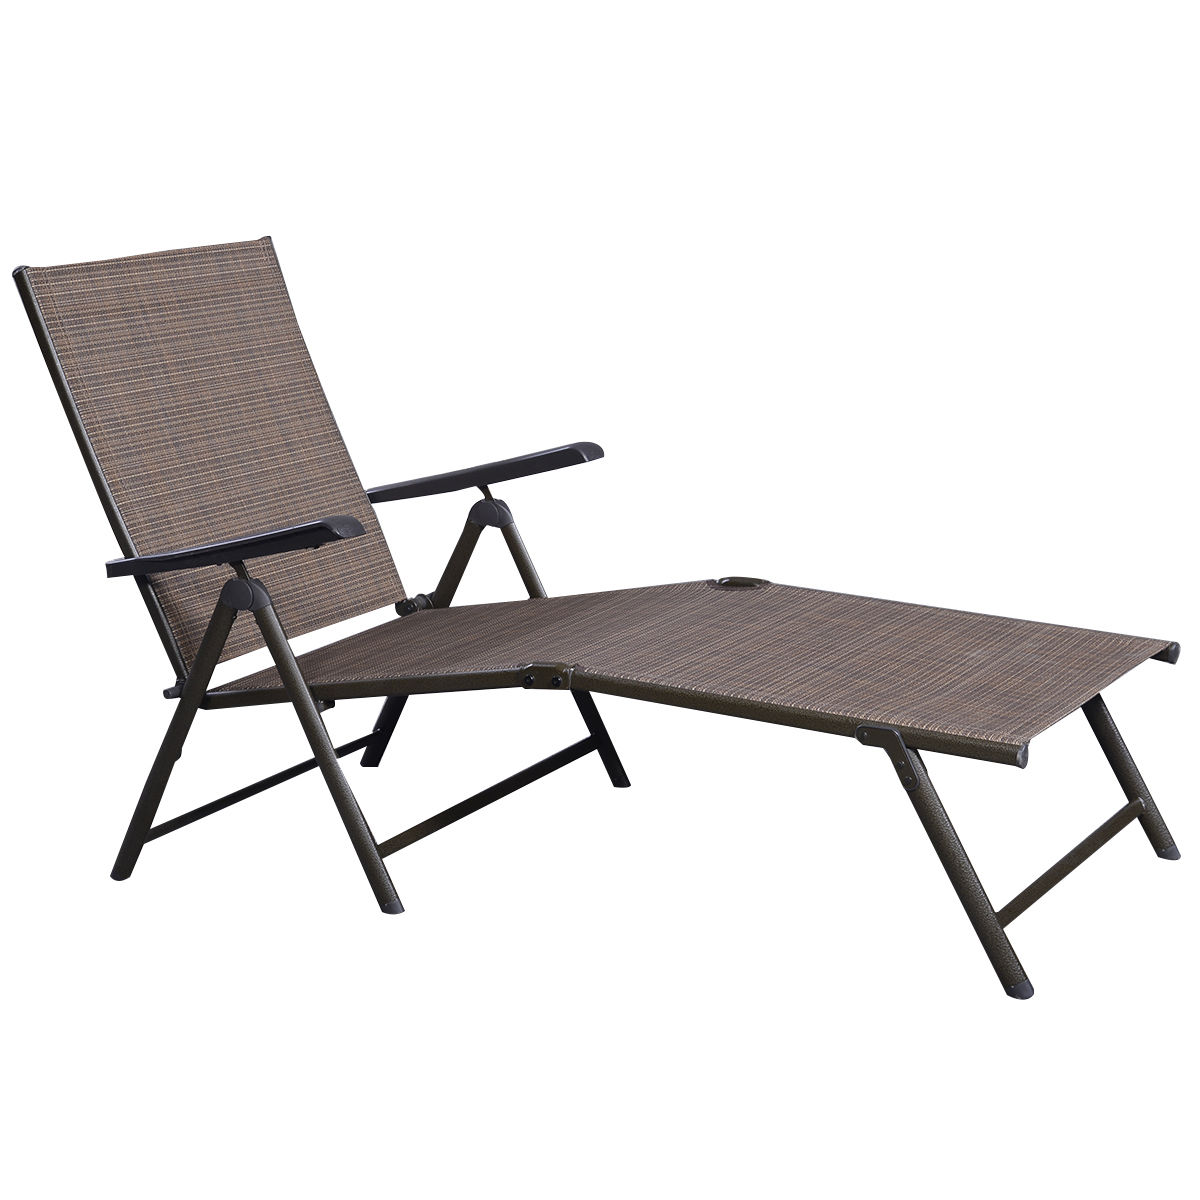 Outdoor Adjustable Chaise Lounge Chair   Sunloungers   Outdoor Seating   Outdoor  Furniture   Furniture